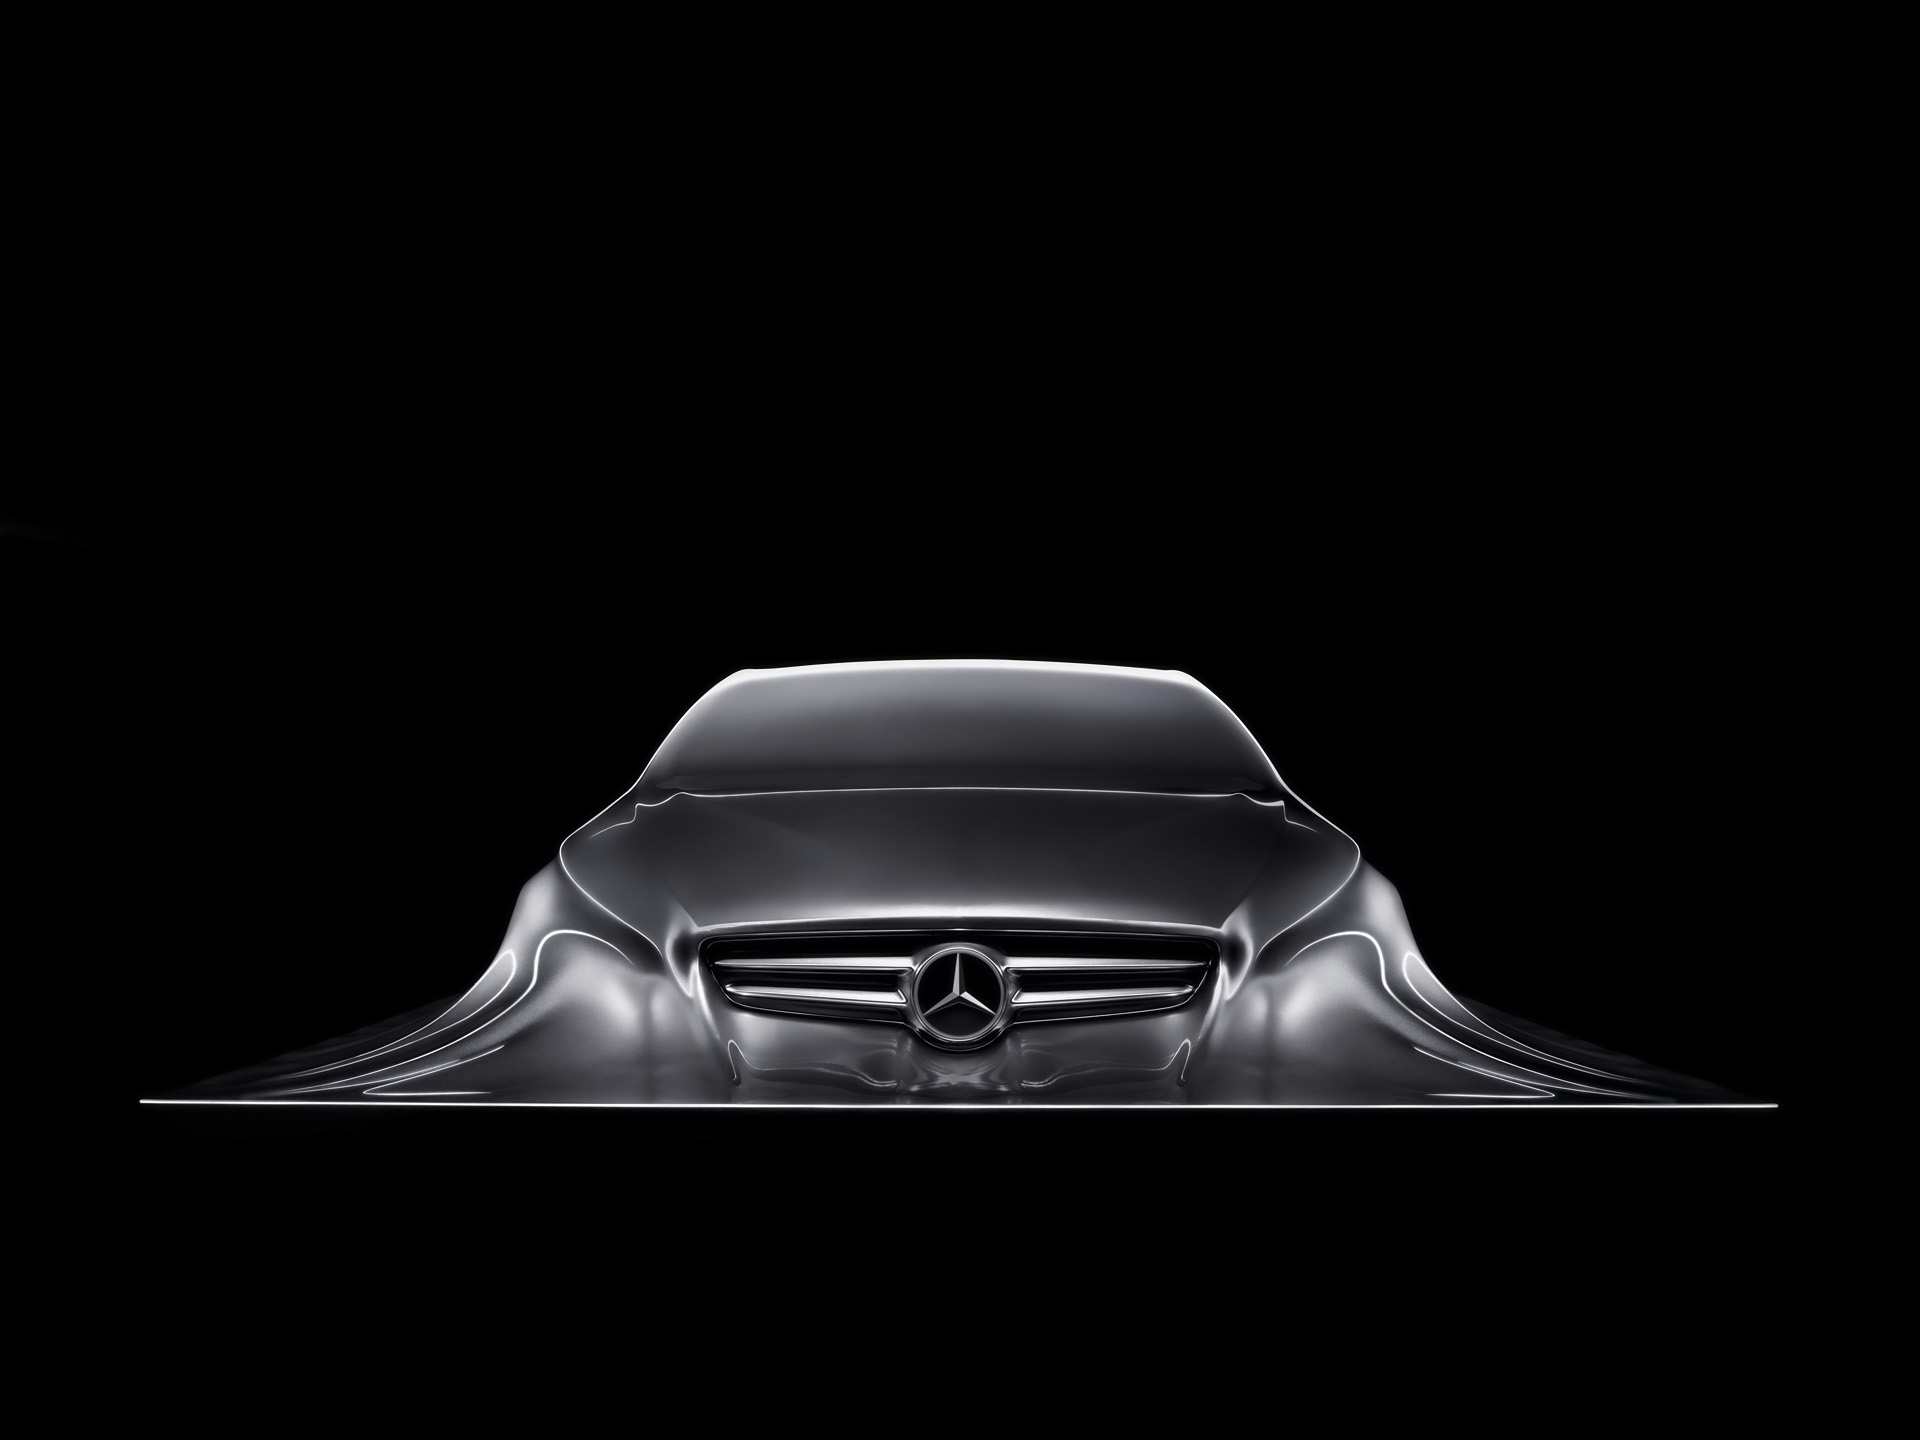 Mercedes Benz Design Sculpture 1 desktop PC and Mac wallpaper 1920x1440